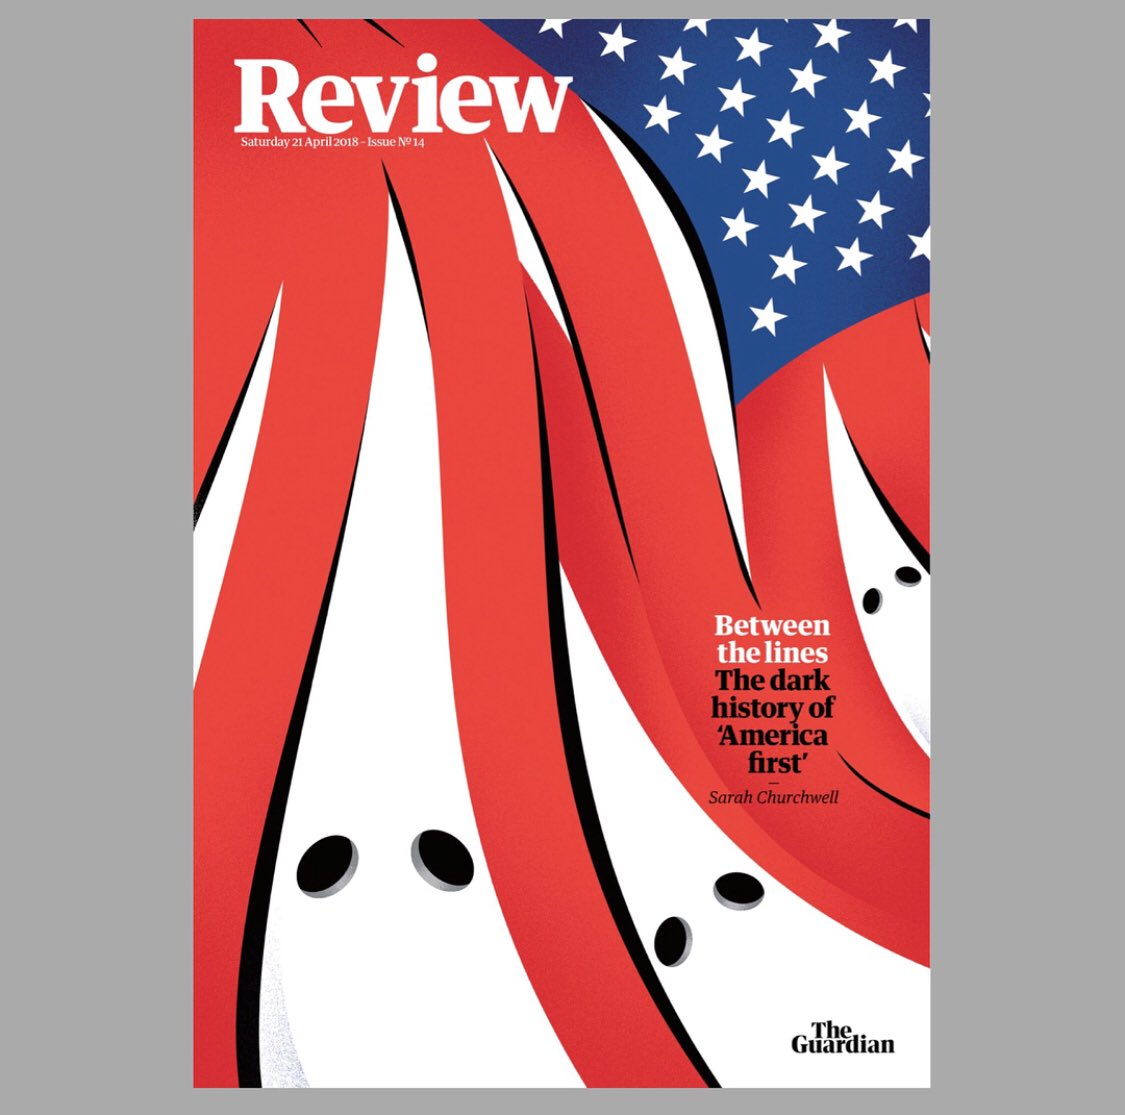 Today's @guardian review cover and inside spread #usa #us #politics #illustration #design #typography #magazine #covers<br>http://pic.twitter.com/pIEjHpOANC